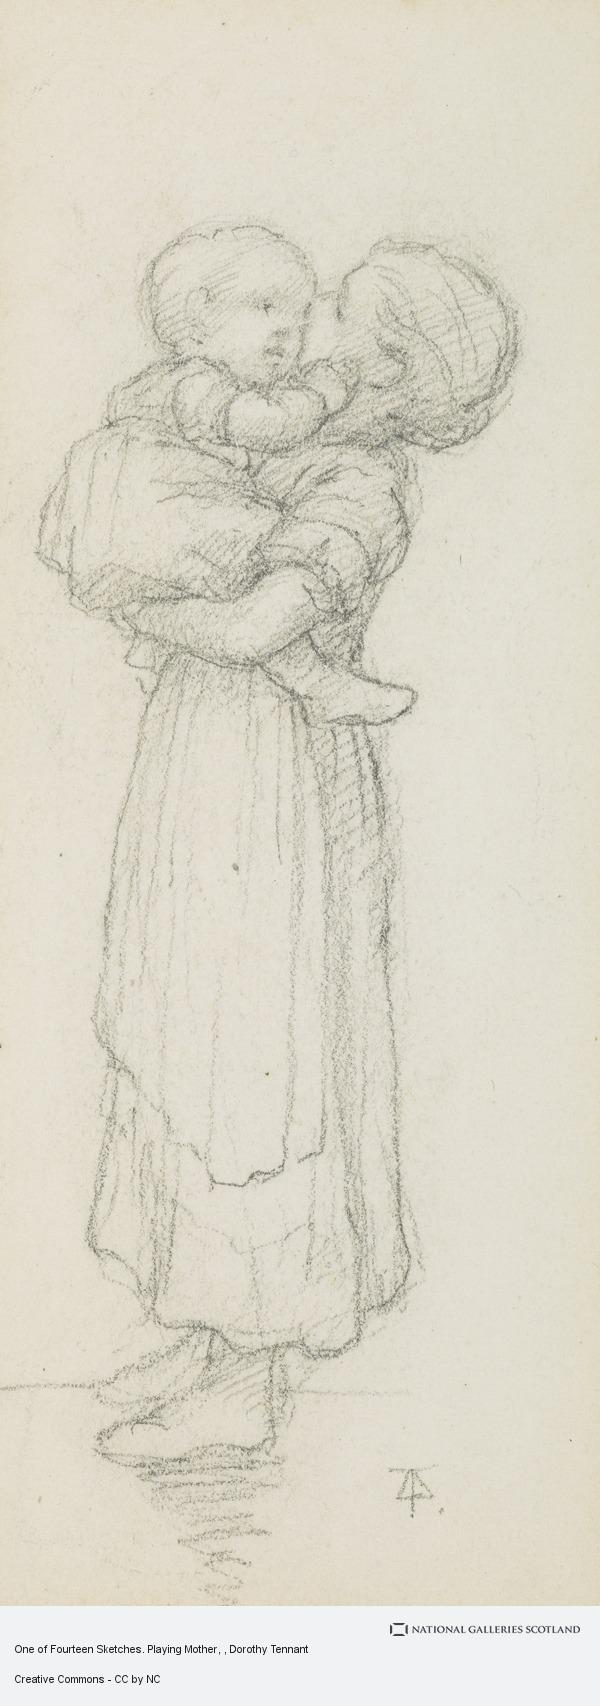 Dorothy Tennant, One of Fourteen Sketches. Playing Mother